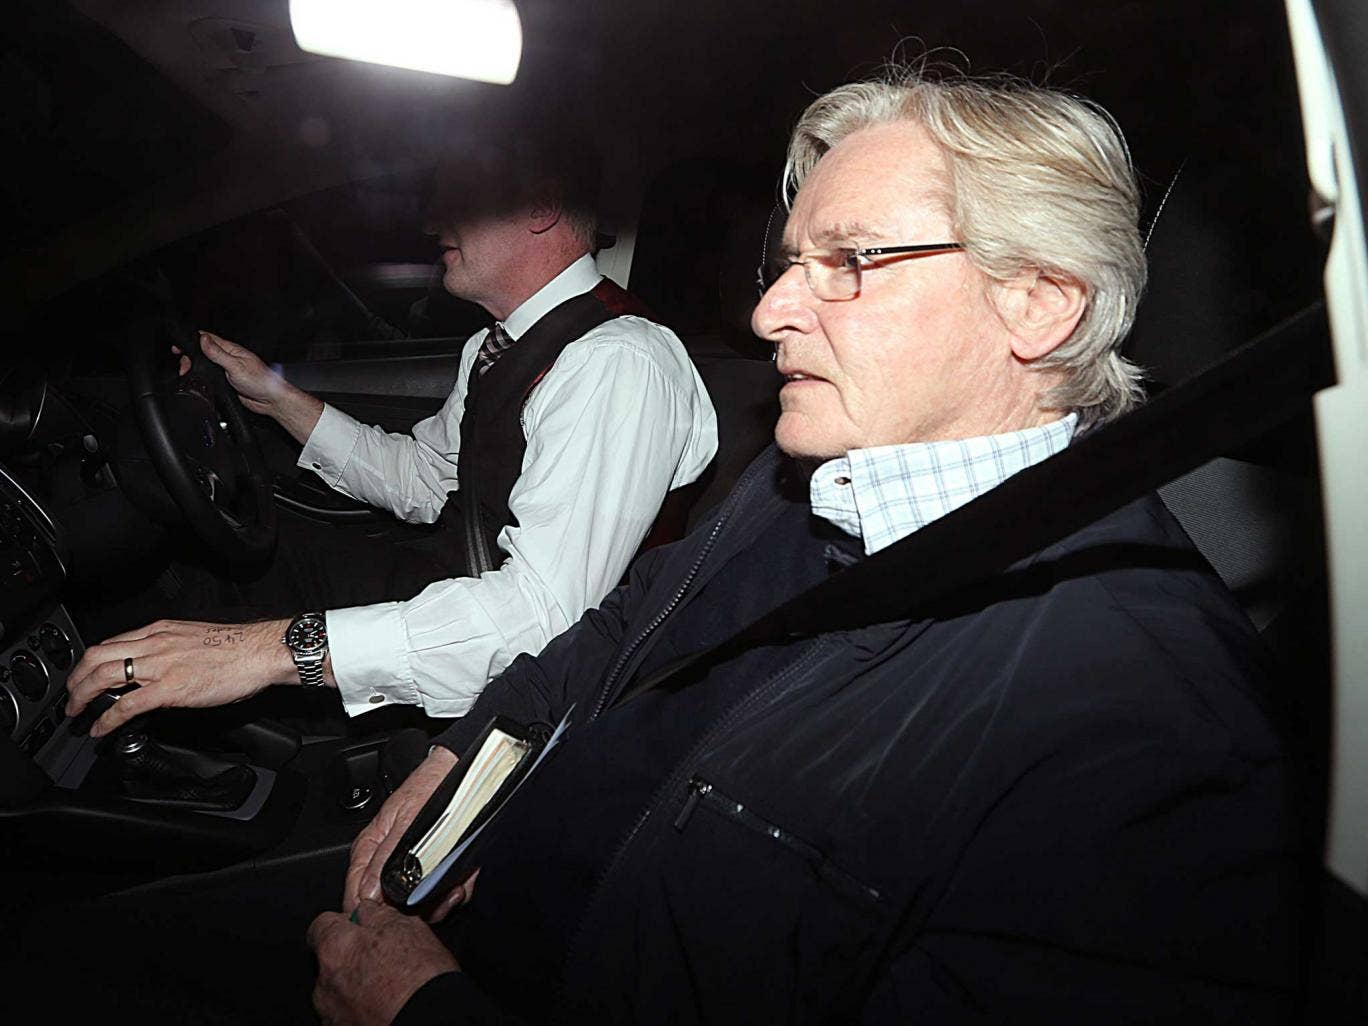 Coronation Street actor Bill Roache arriving home in Cheshire after it was announced that he has been arrested on suspicion of an historic allegation of a sexual assault